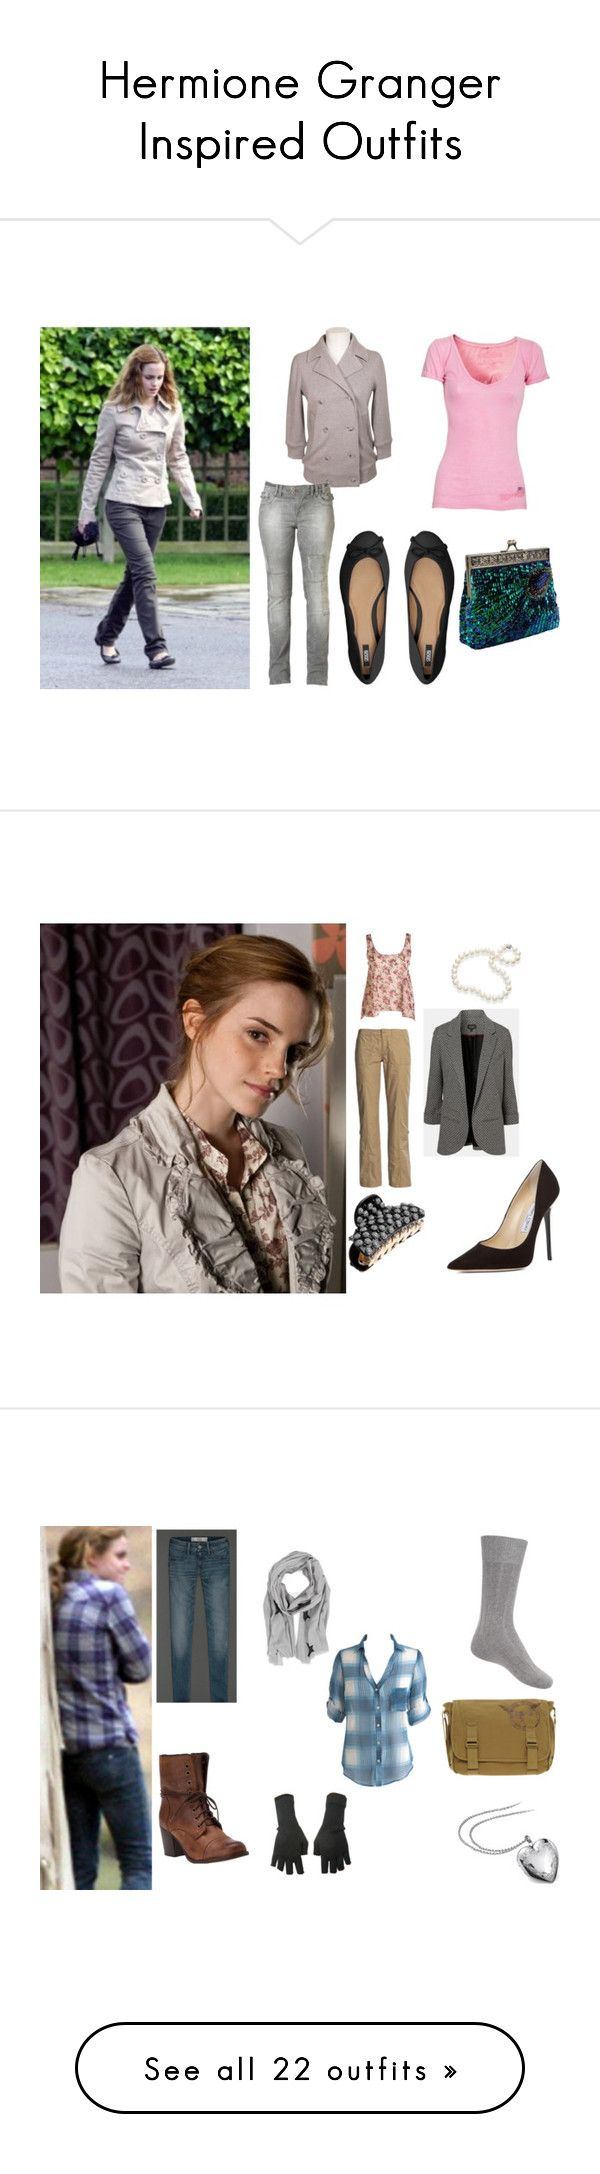 """Hermione Granger Inspired Outfits"" by yellowheads ❤ liked on Polyvore featuring Marc by Marc Jacobs, True Religion, Joe Browns, ASOS, hermione granger, harry potter, emma watson, deathly hallows, Emma Watson and Topshop"